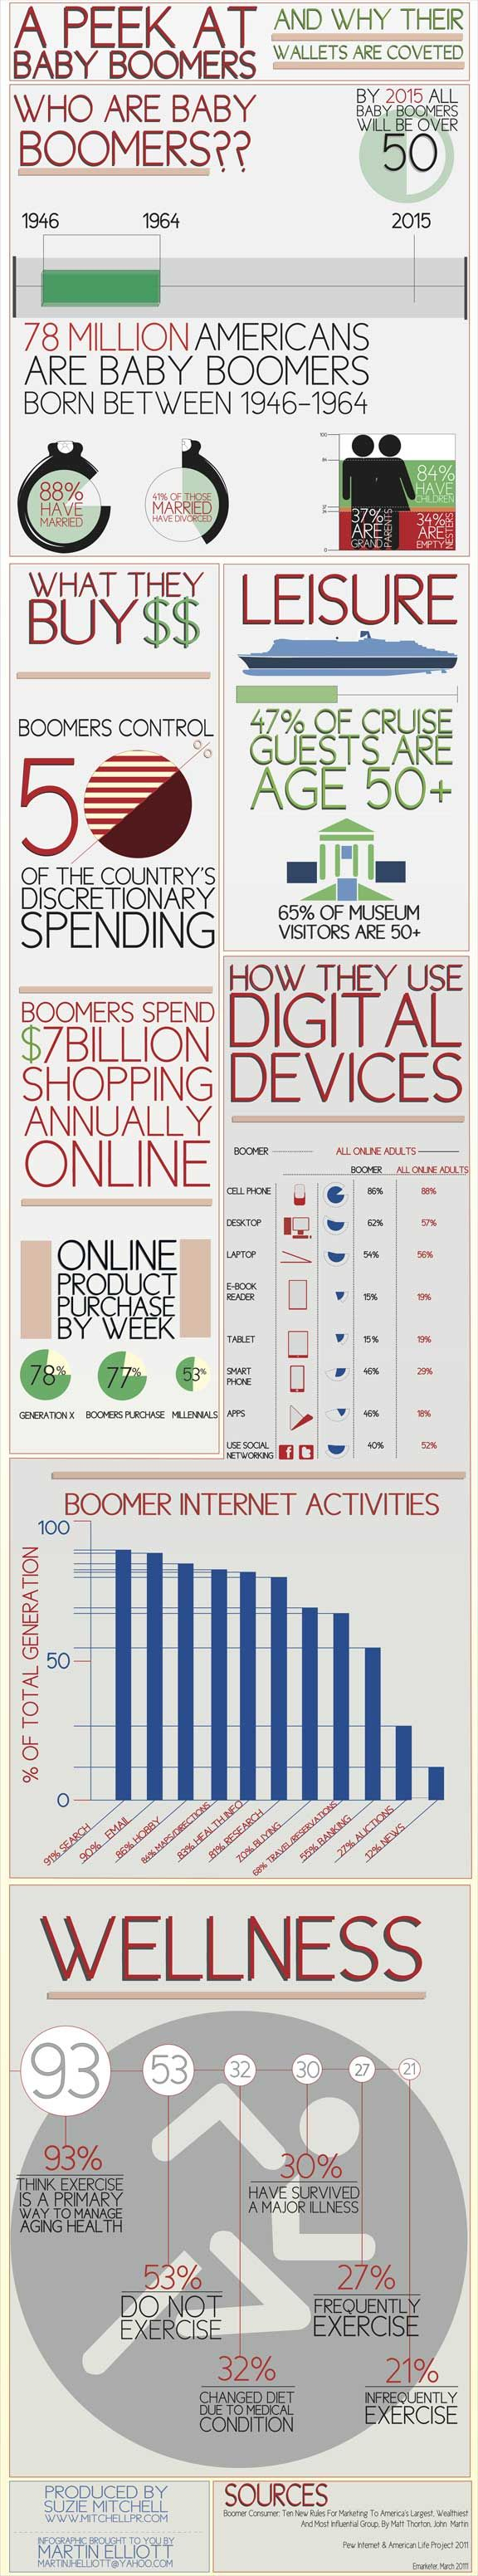 #social media/ Baby Boomers & Online Spending. A look at Baby Boomers, the largest and wealthiest co-hort in America. A view of their spending habits and use of digital devices.